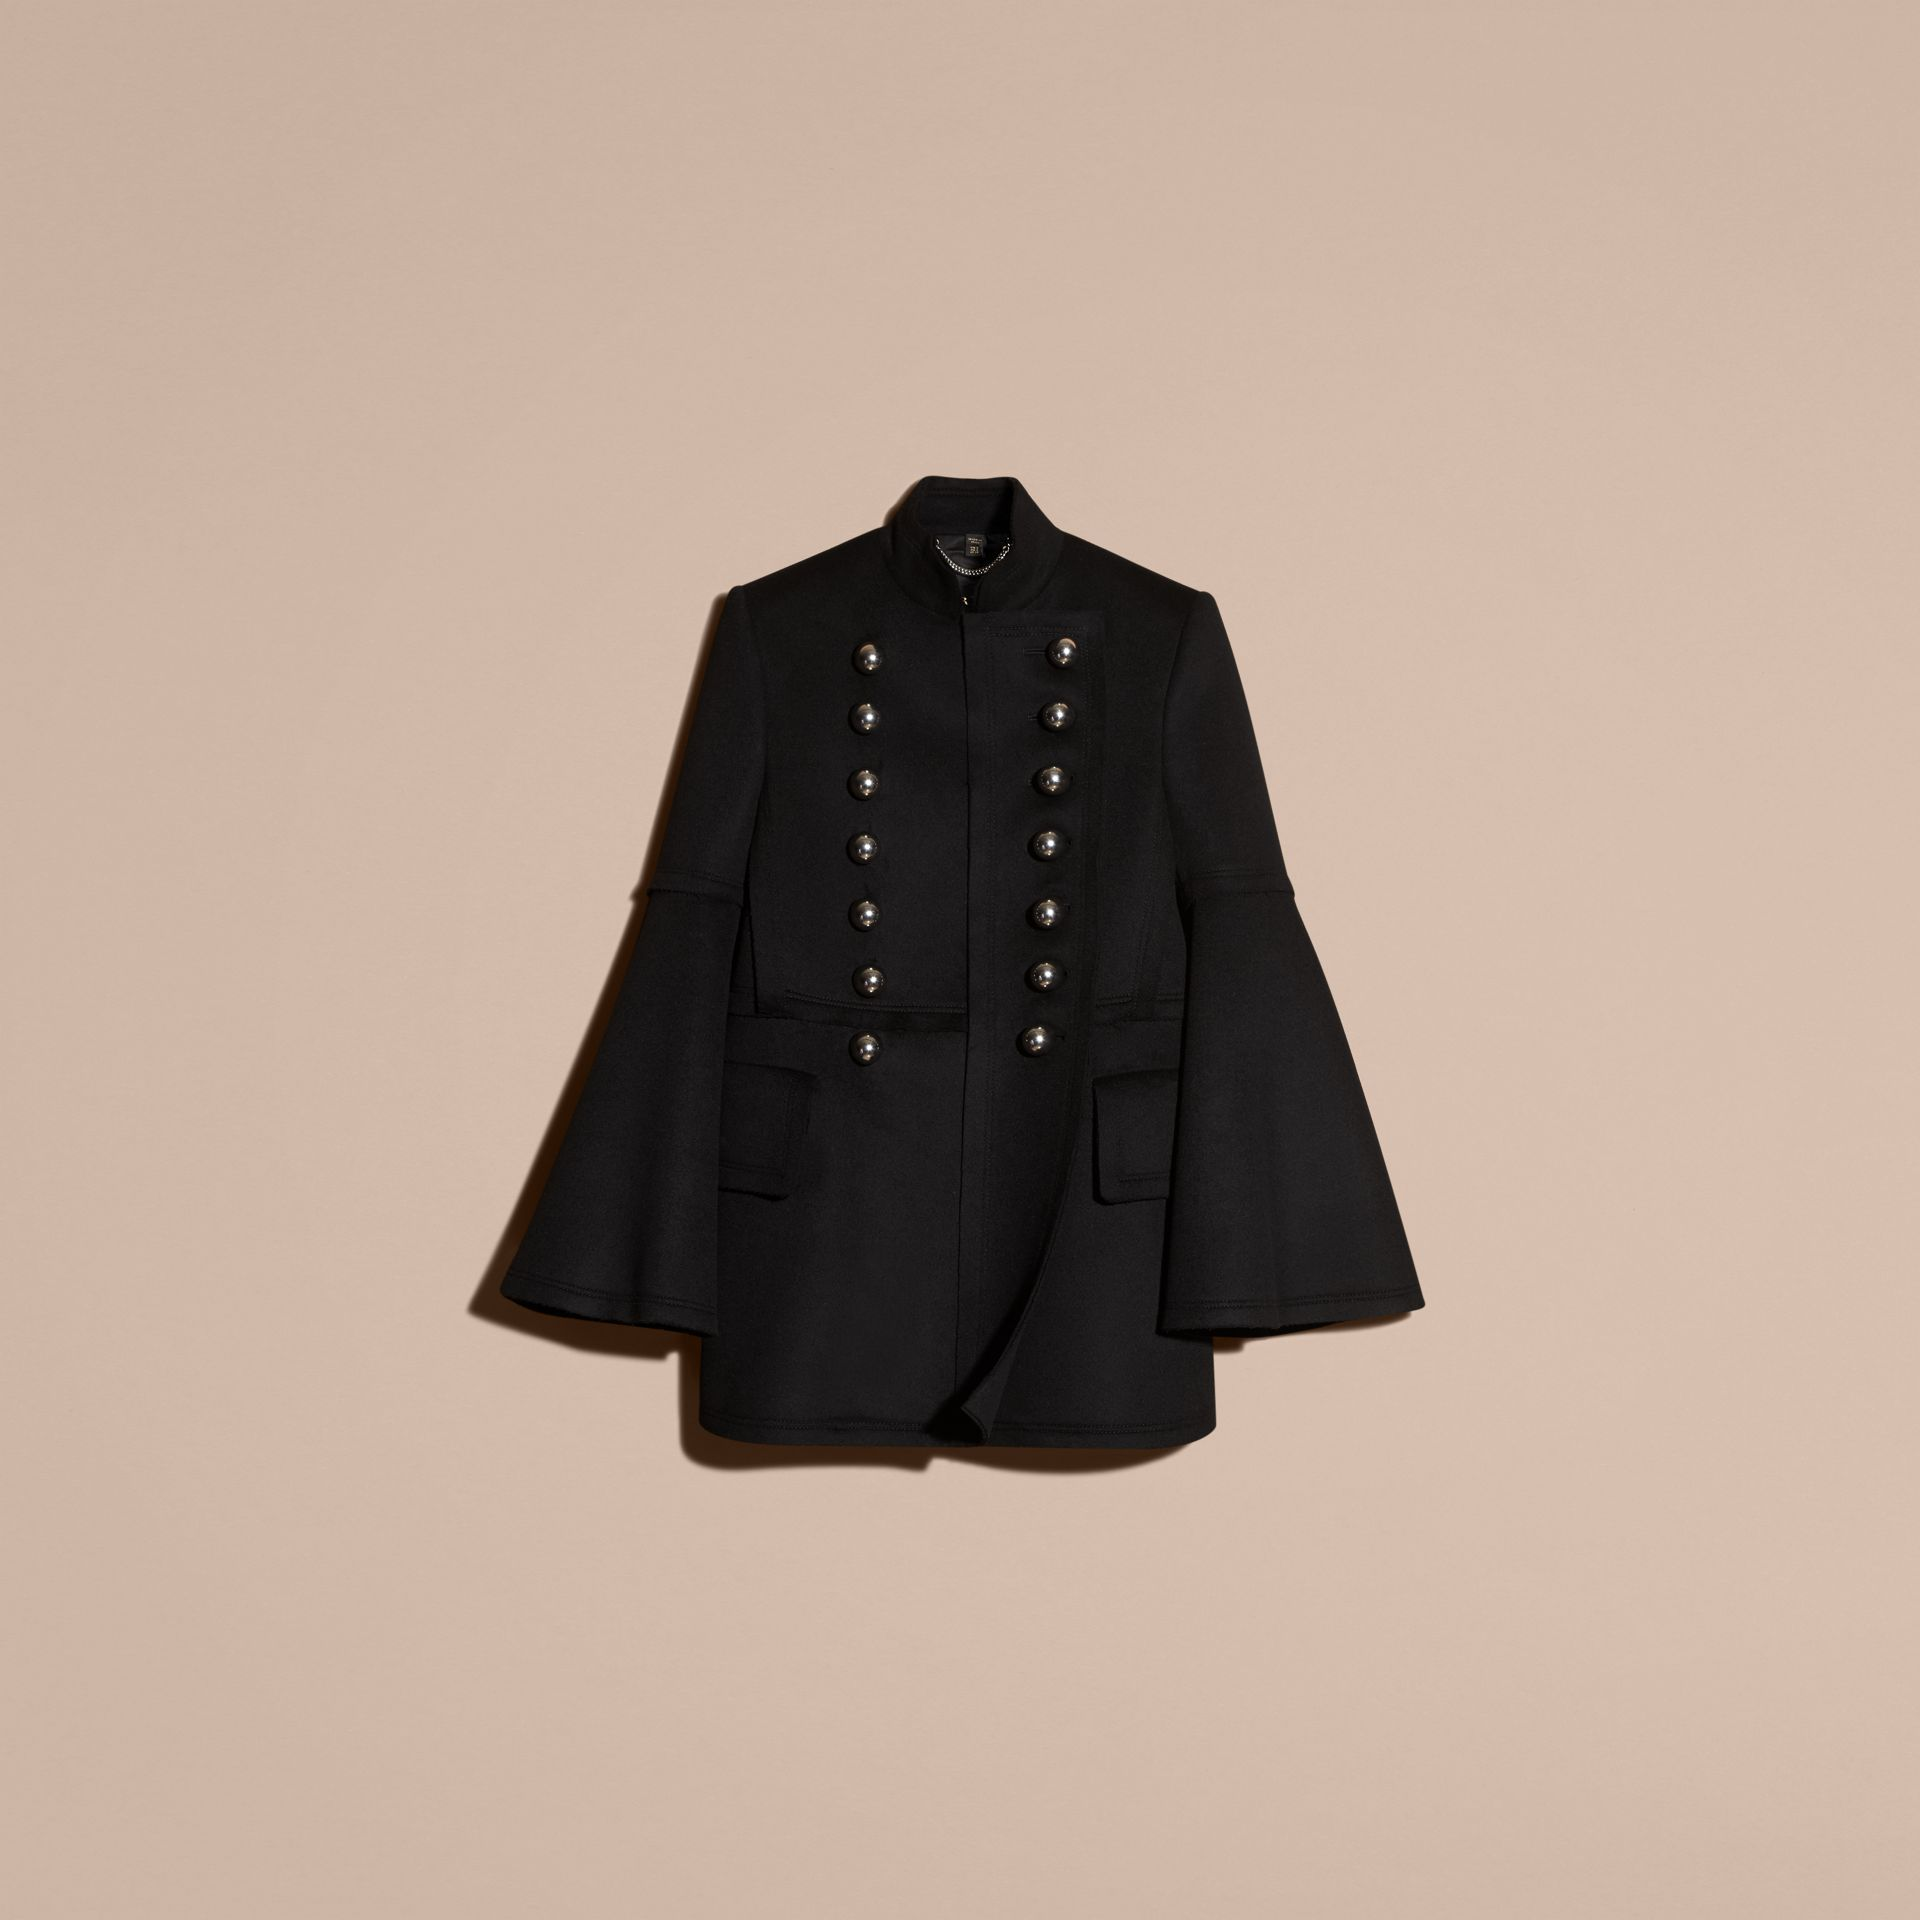 Black Bell-sleeved Military Wool Jacket - gallery image 4